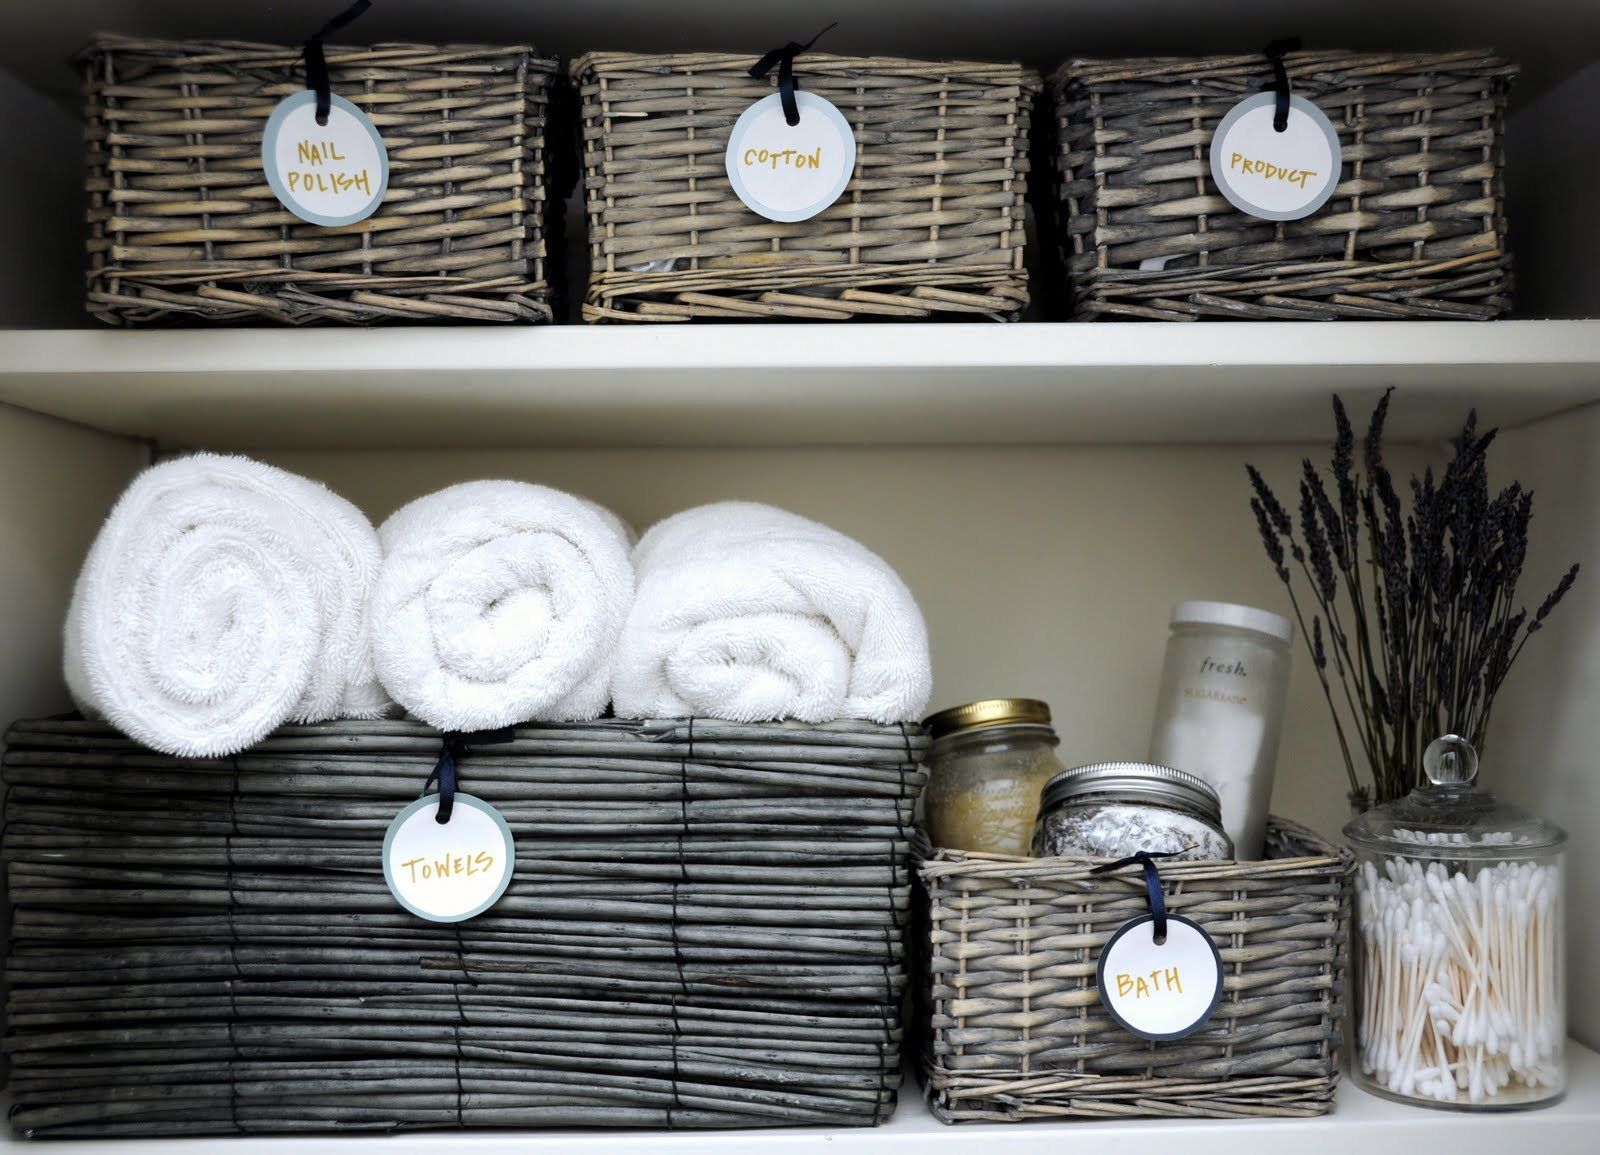 solution ideas baskets no depot shelves organizer org organizers storage closet organization linen home hospee small